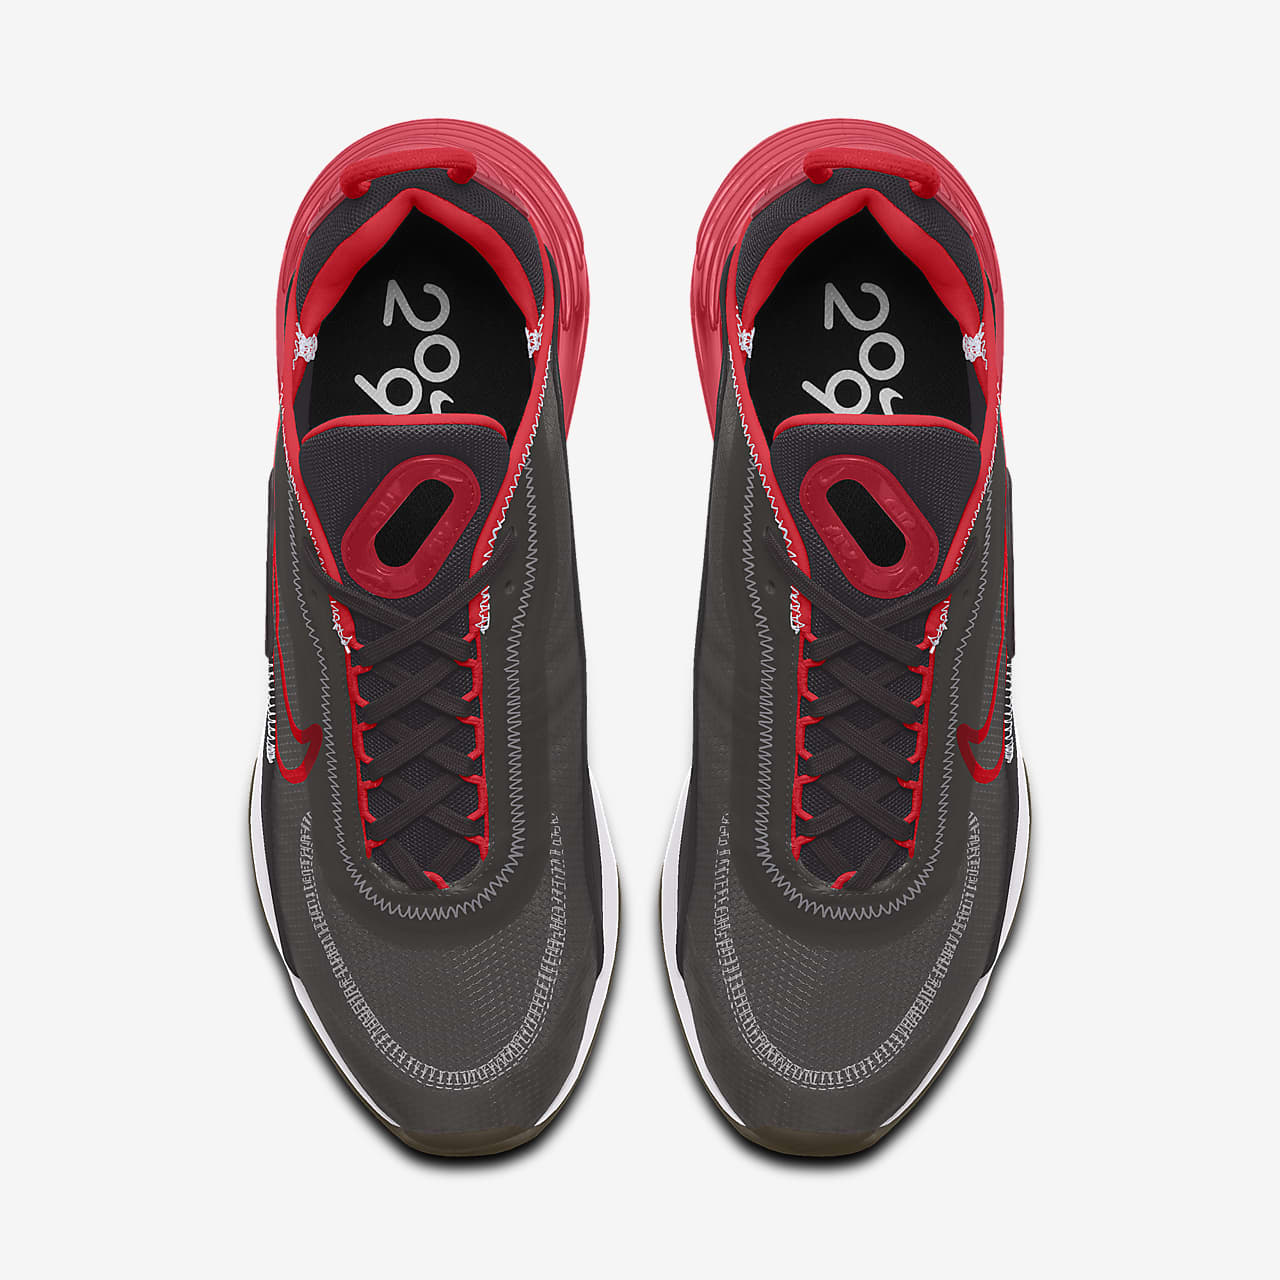 Hacer la cama Ser amado Rafflesia Arnoldi  Nike Air Max 2090 By You Custom Men's Shoe. Nike NL